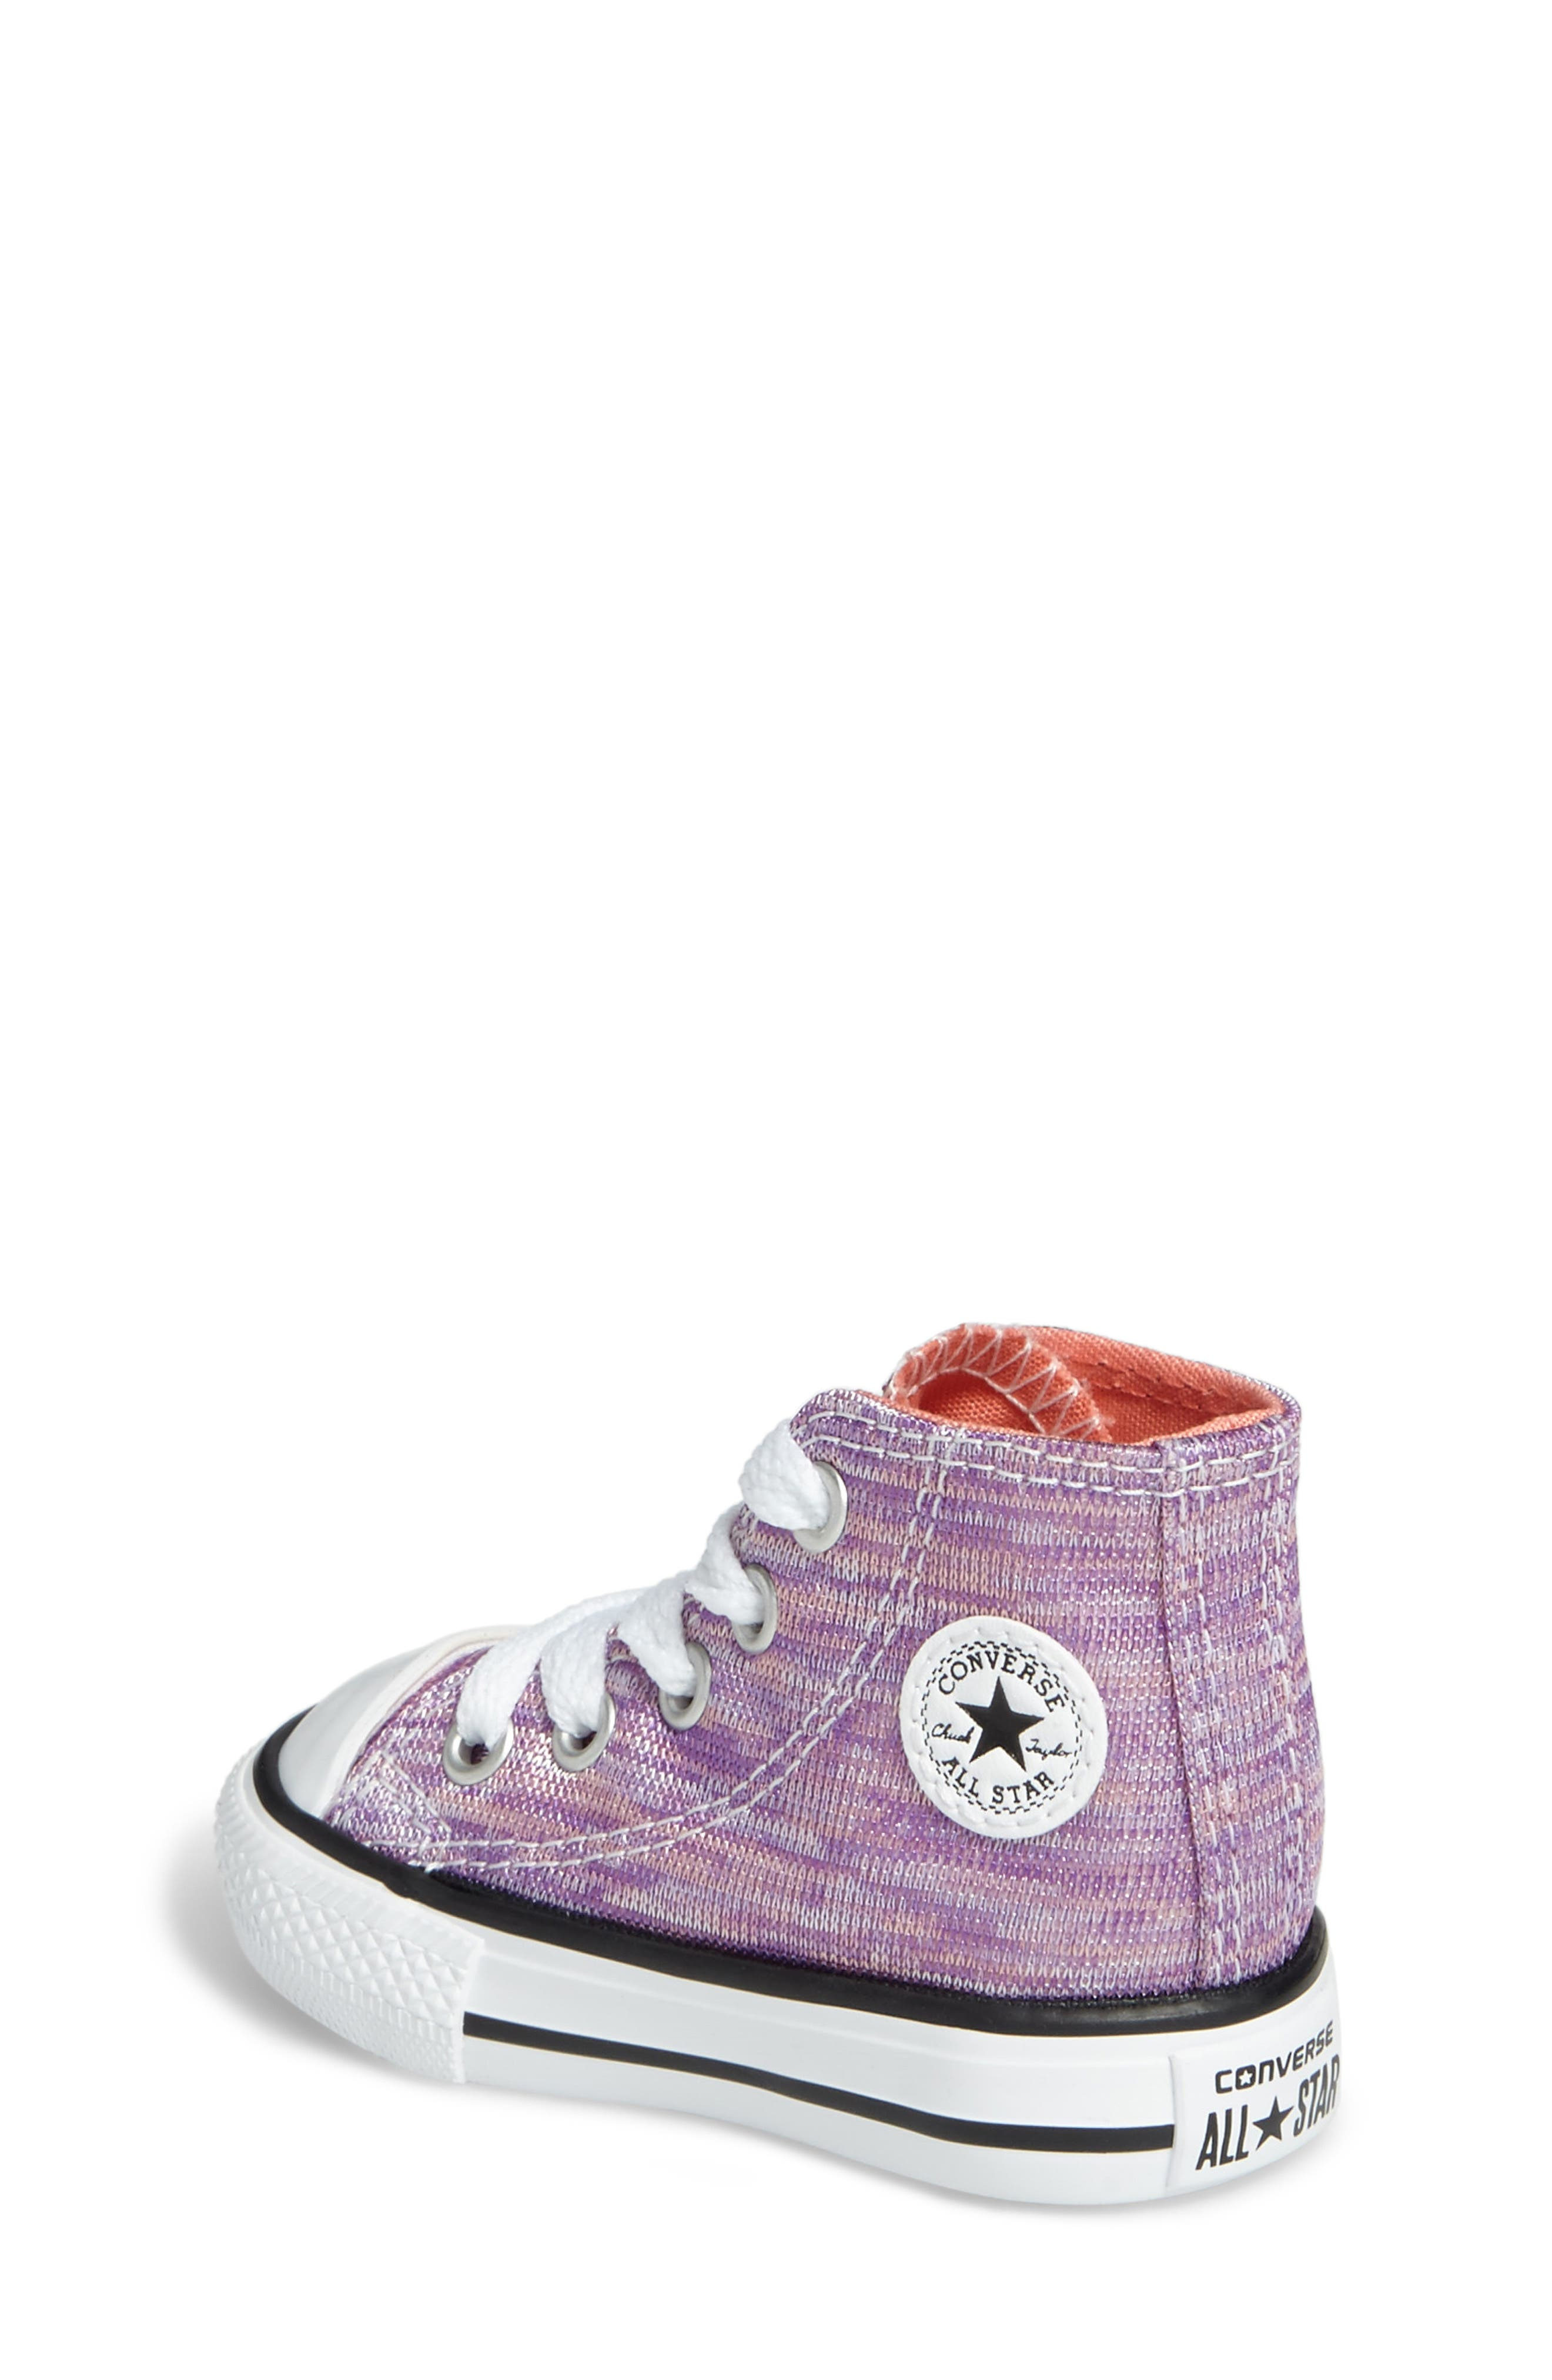 Chuck Taylor<sup>®</sup> All Star<sup>®</sup> Knit High Top Sneaker,                             Alternate thumbnail 2, color,                             Bright Violet Textile